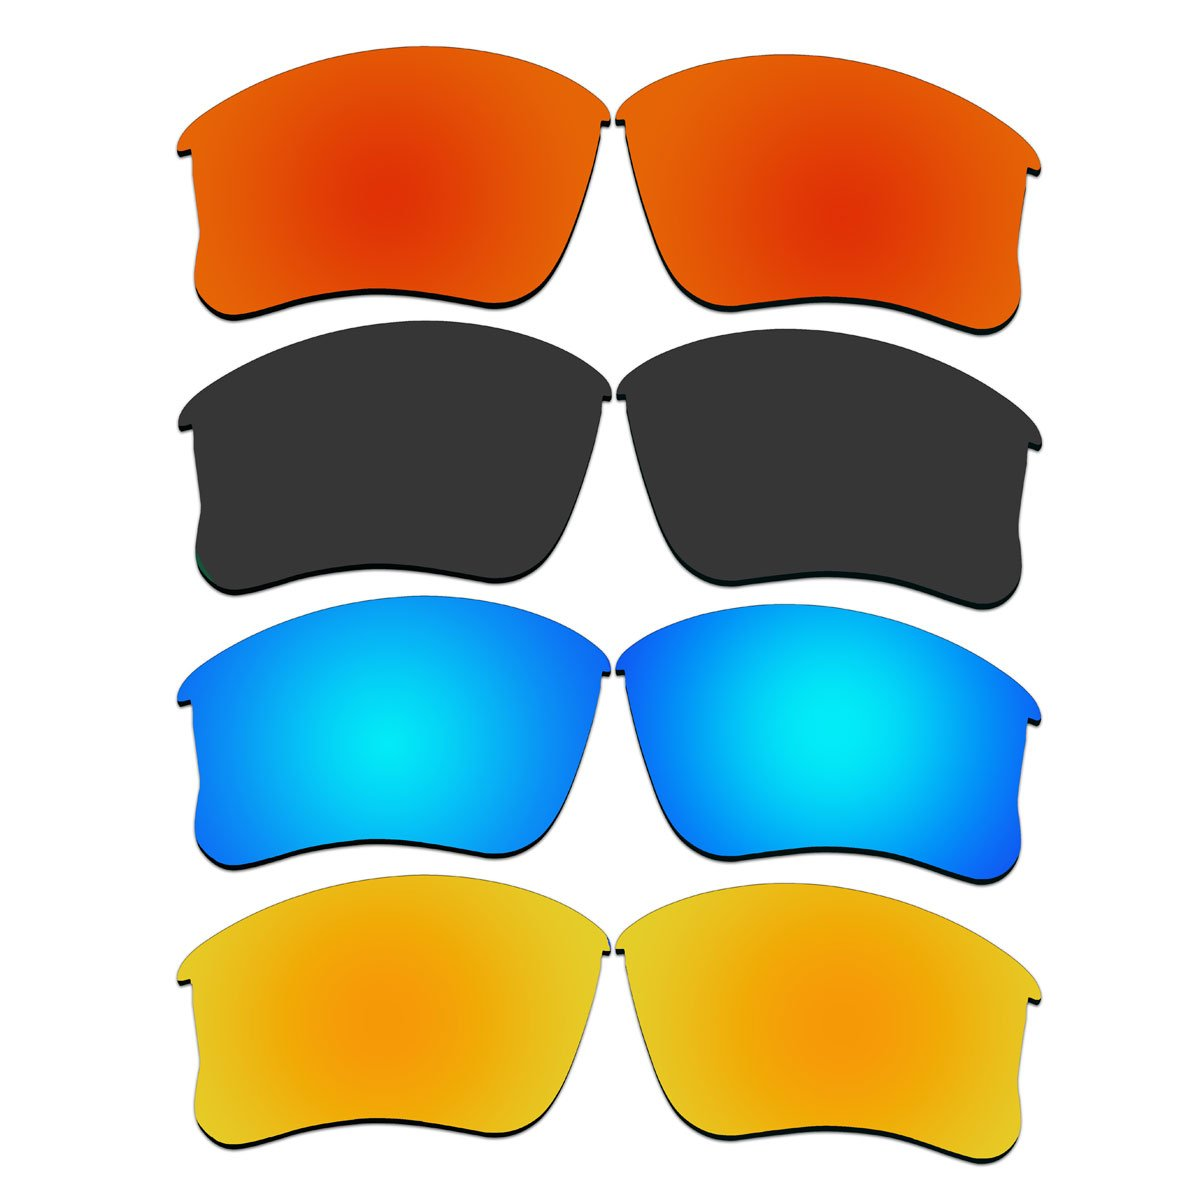 4 Pair Replacement Lenses for Oakley Flak Jacket XLJ Sunglasses With Polarized Pack P9-1 by ACOMPATIBLE